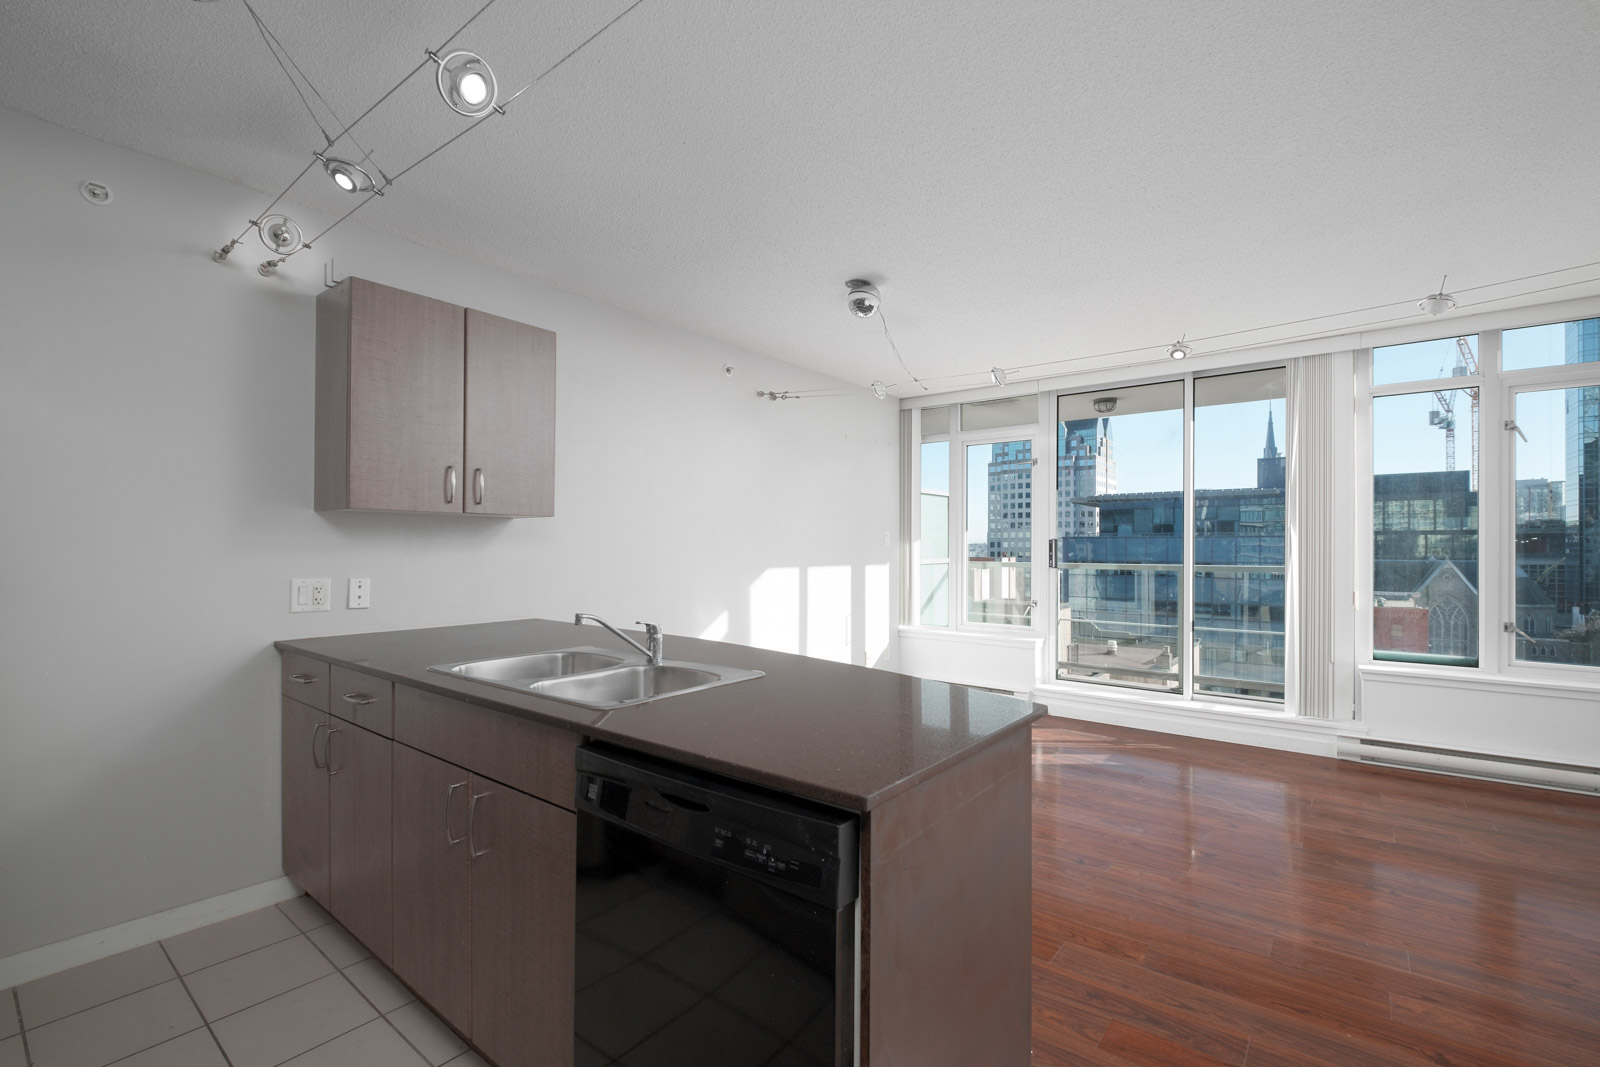 kitchen in rental house in the downtown neighbourhood of Vancouver